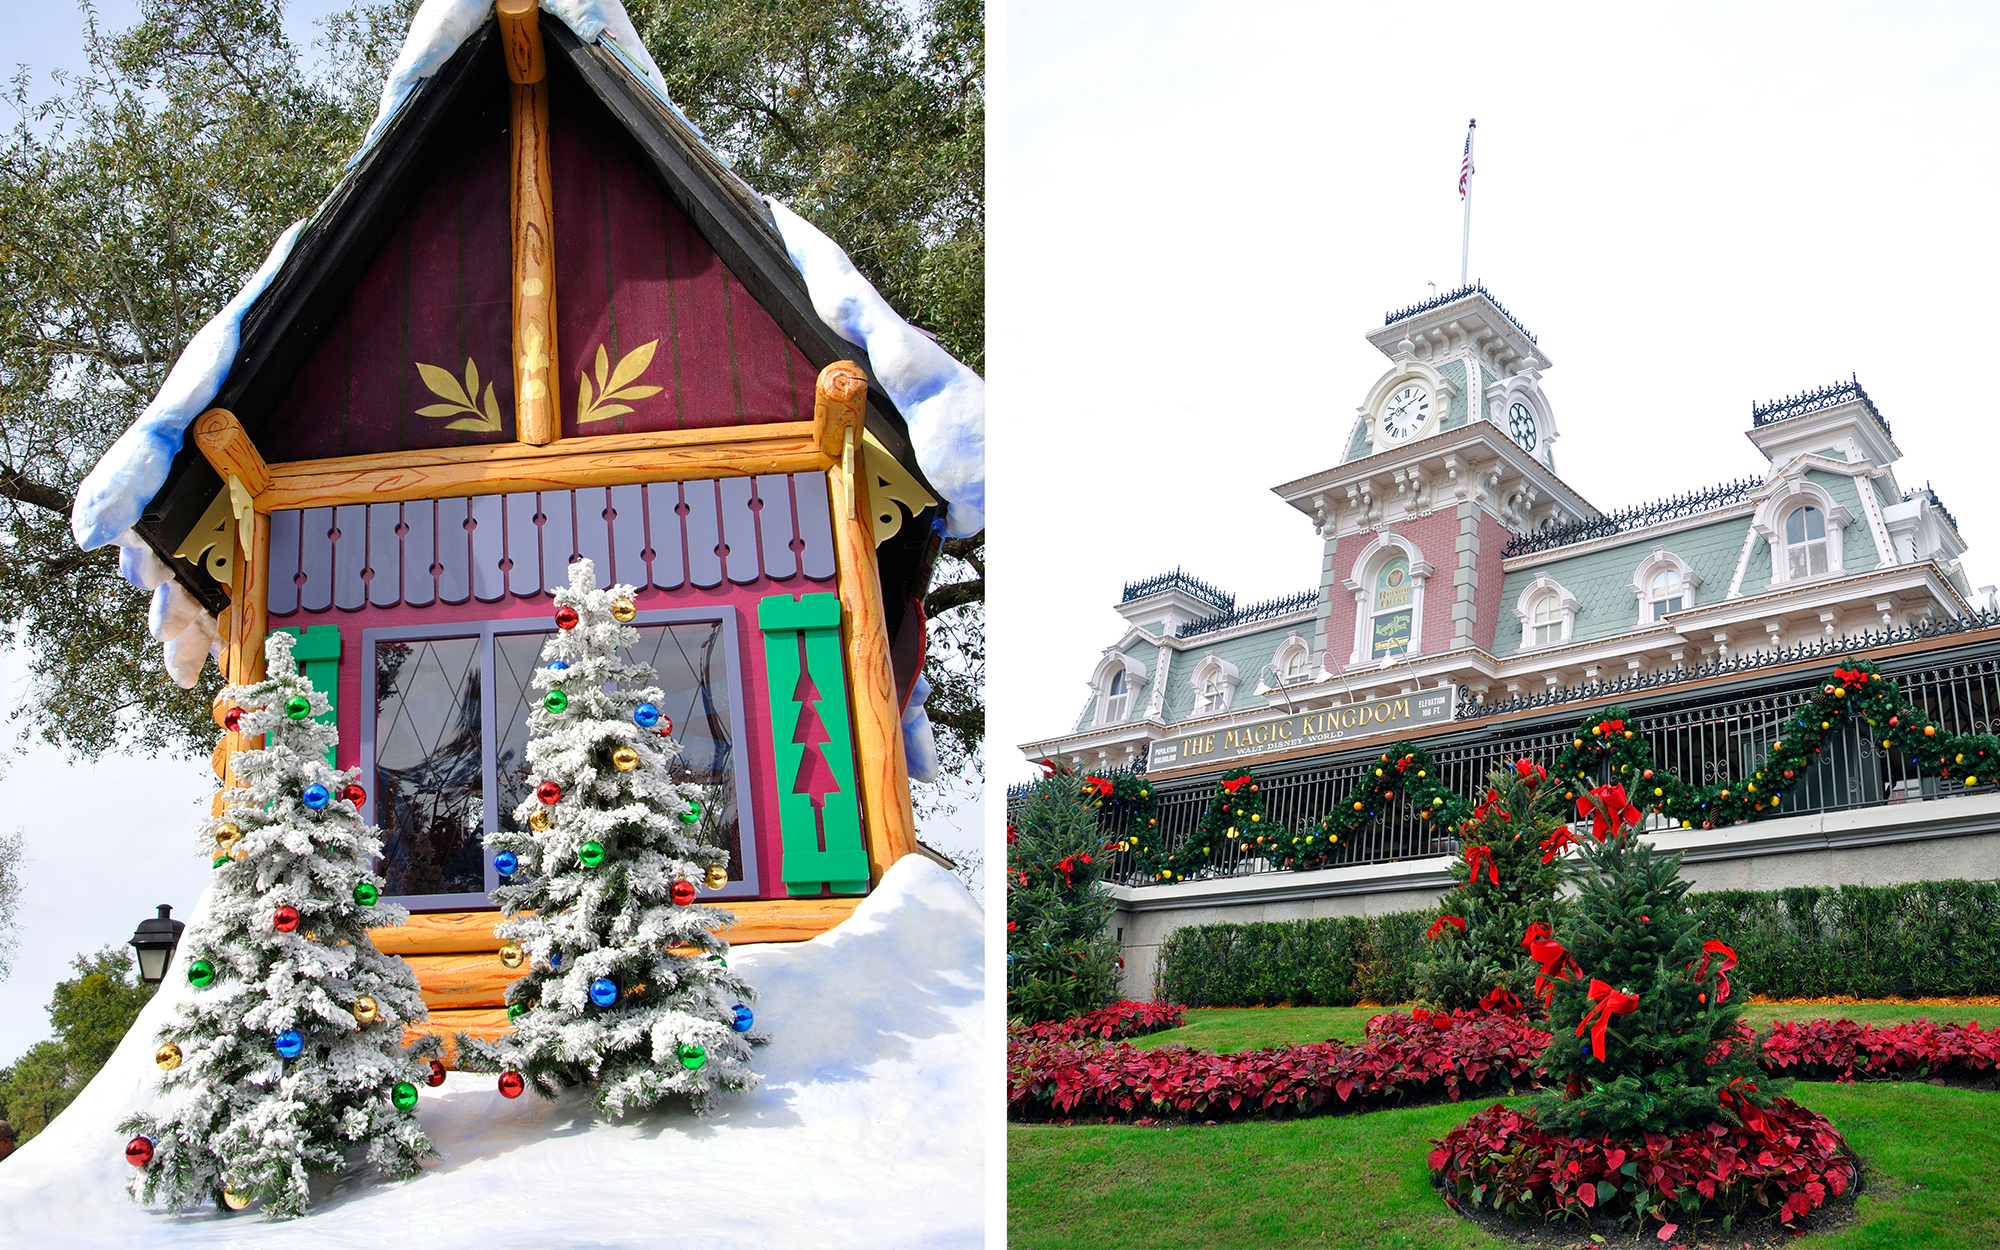 BHCJ72 Christmas at Disneyworld, Orlando, Florida, USA